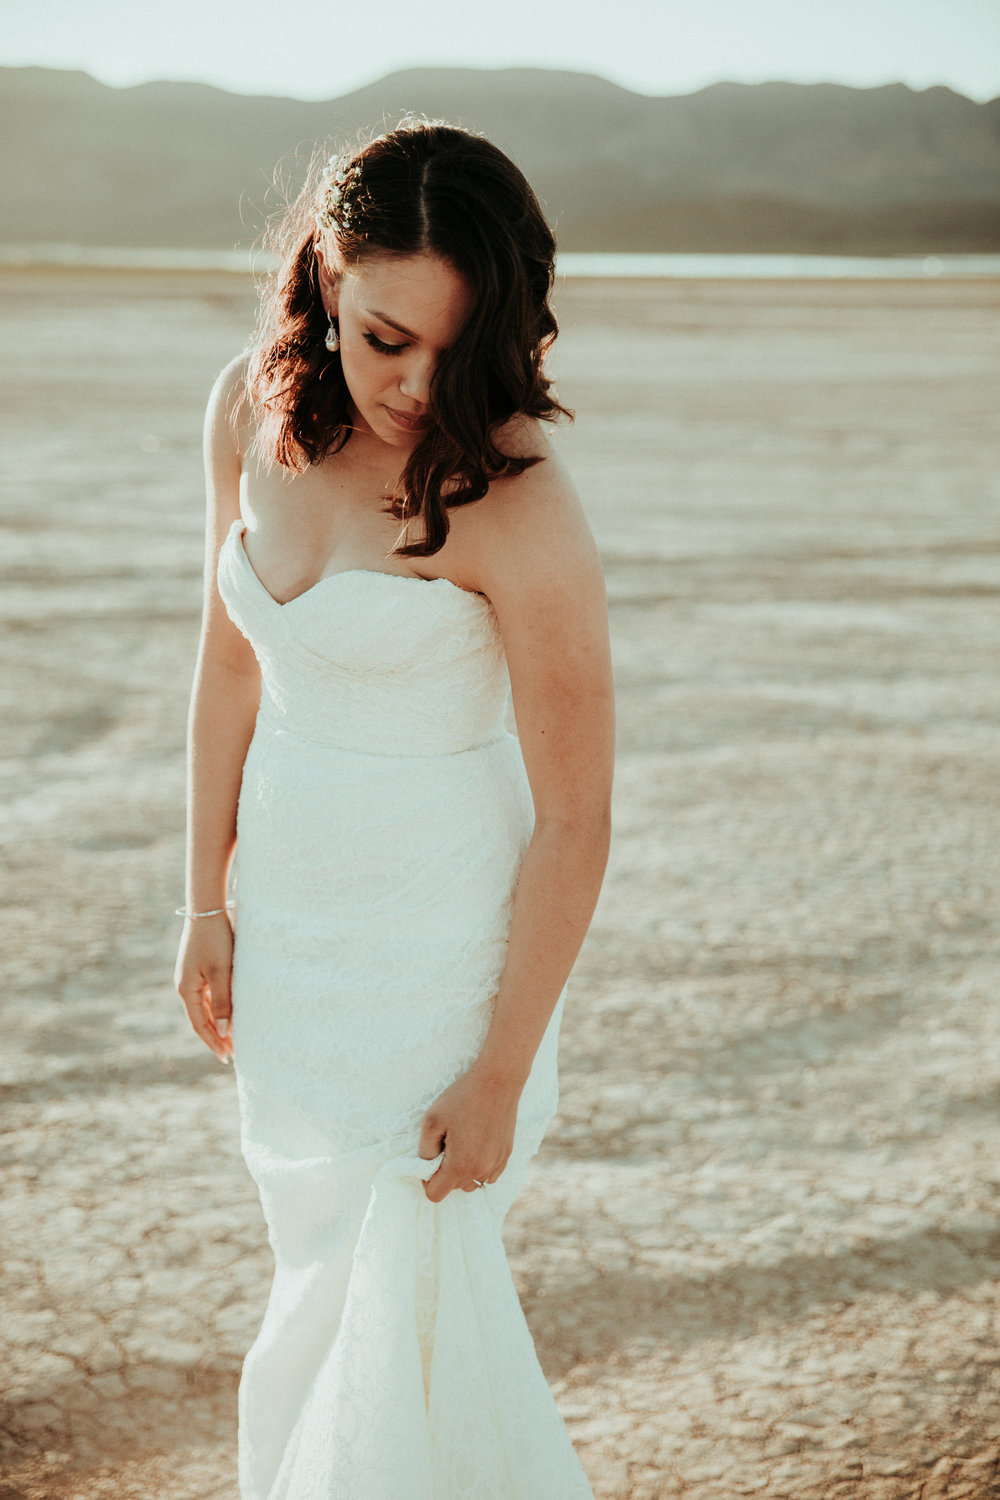 Seattle Wedding Photographer - Las Vegas Wedding Photography - First Look Session - Bridal Portrait - Henderson, NV - Lace Wedding Dress - PNW Wedding Photographer